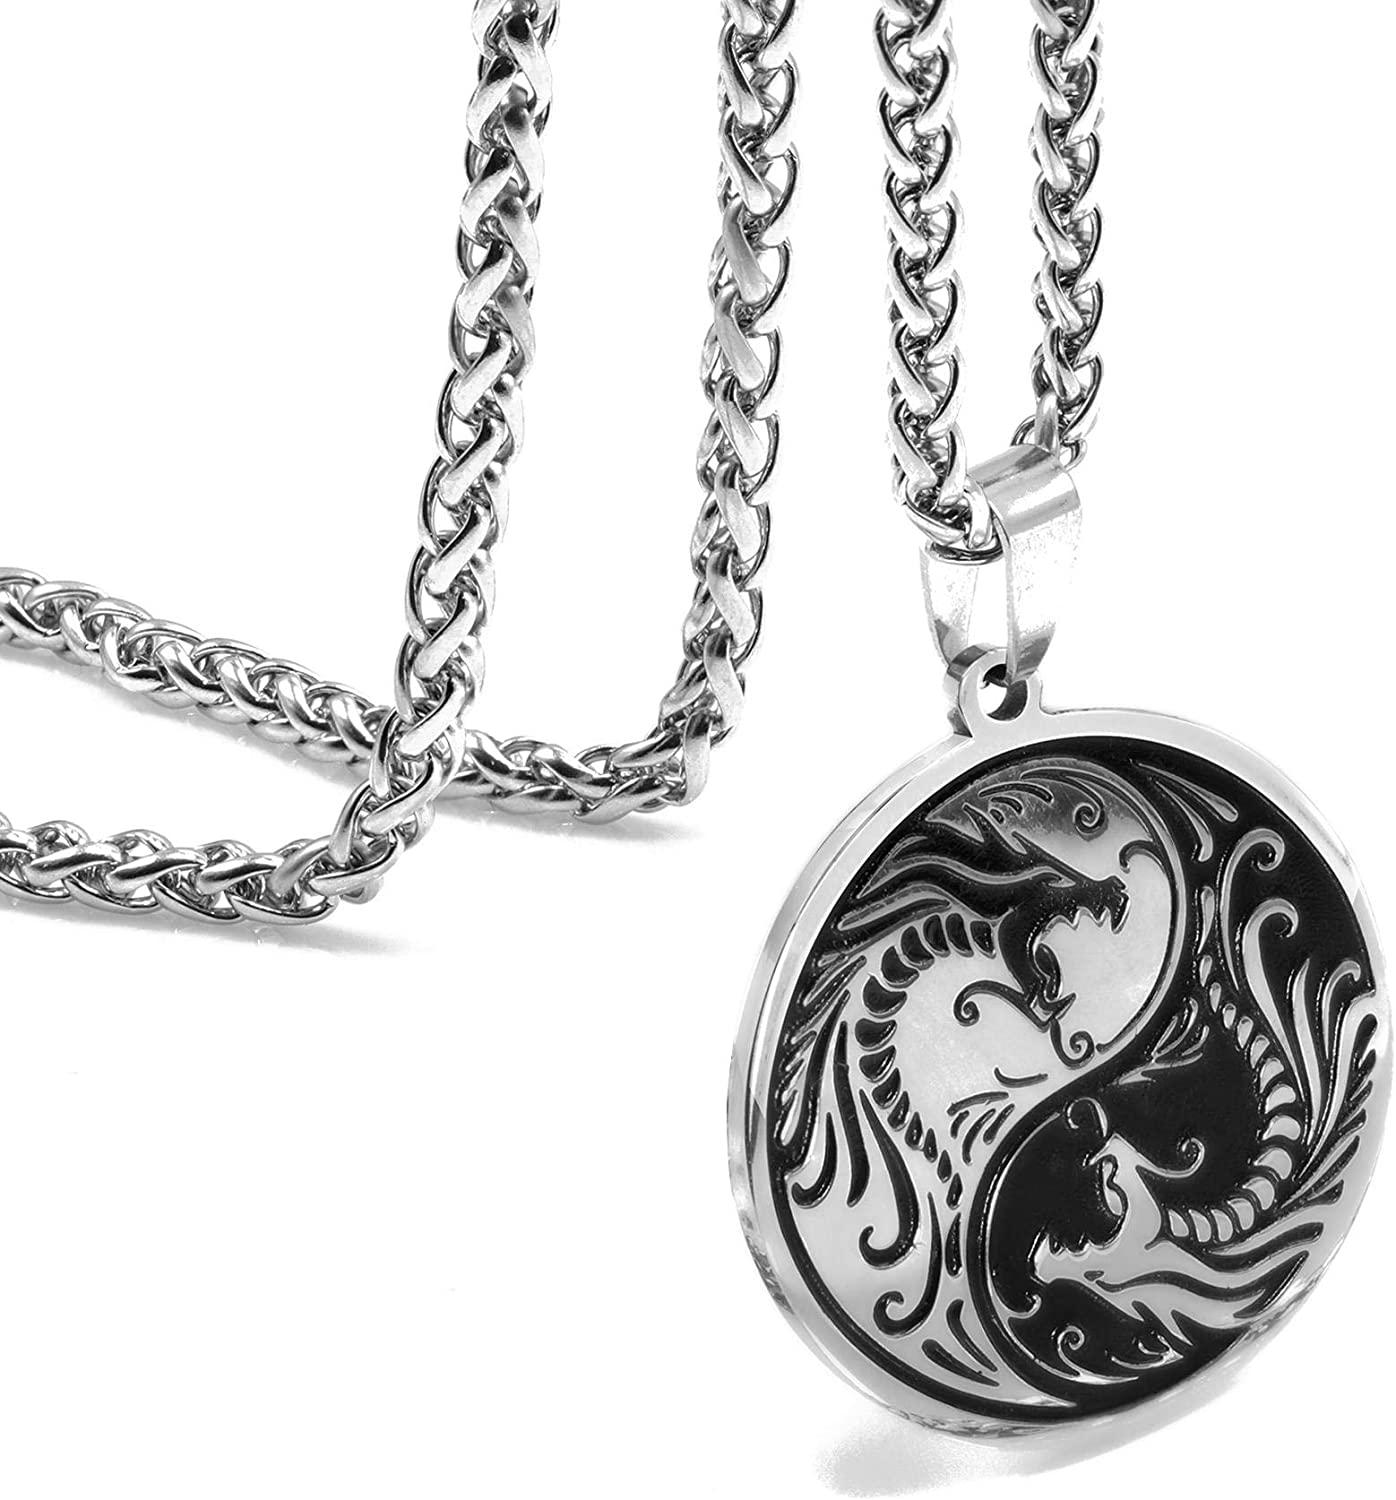 ZONICTA Dragon Yin Yang Necklace for Men - Jewelry Stainless Steel Amulet Pendant Necklace with Gift Bag